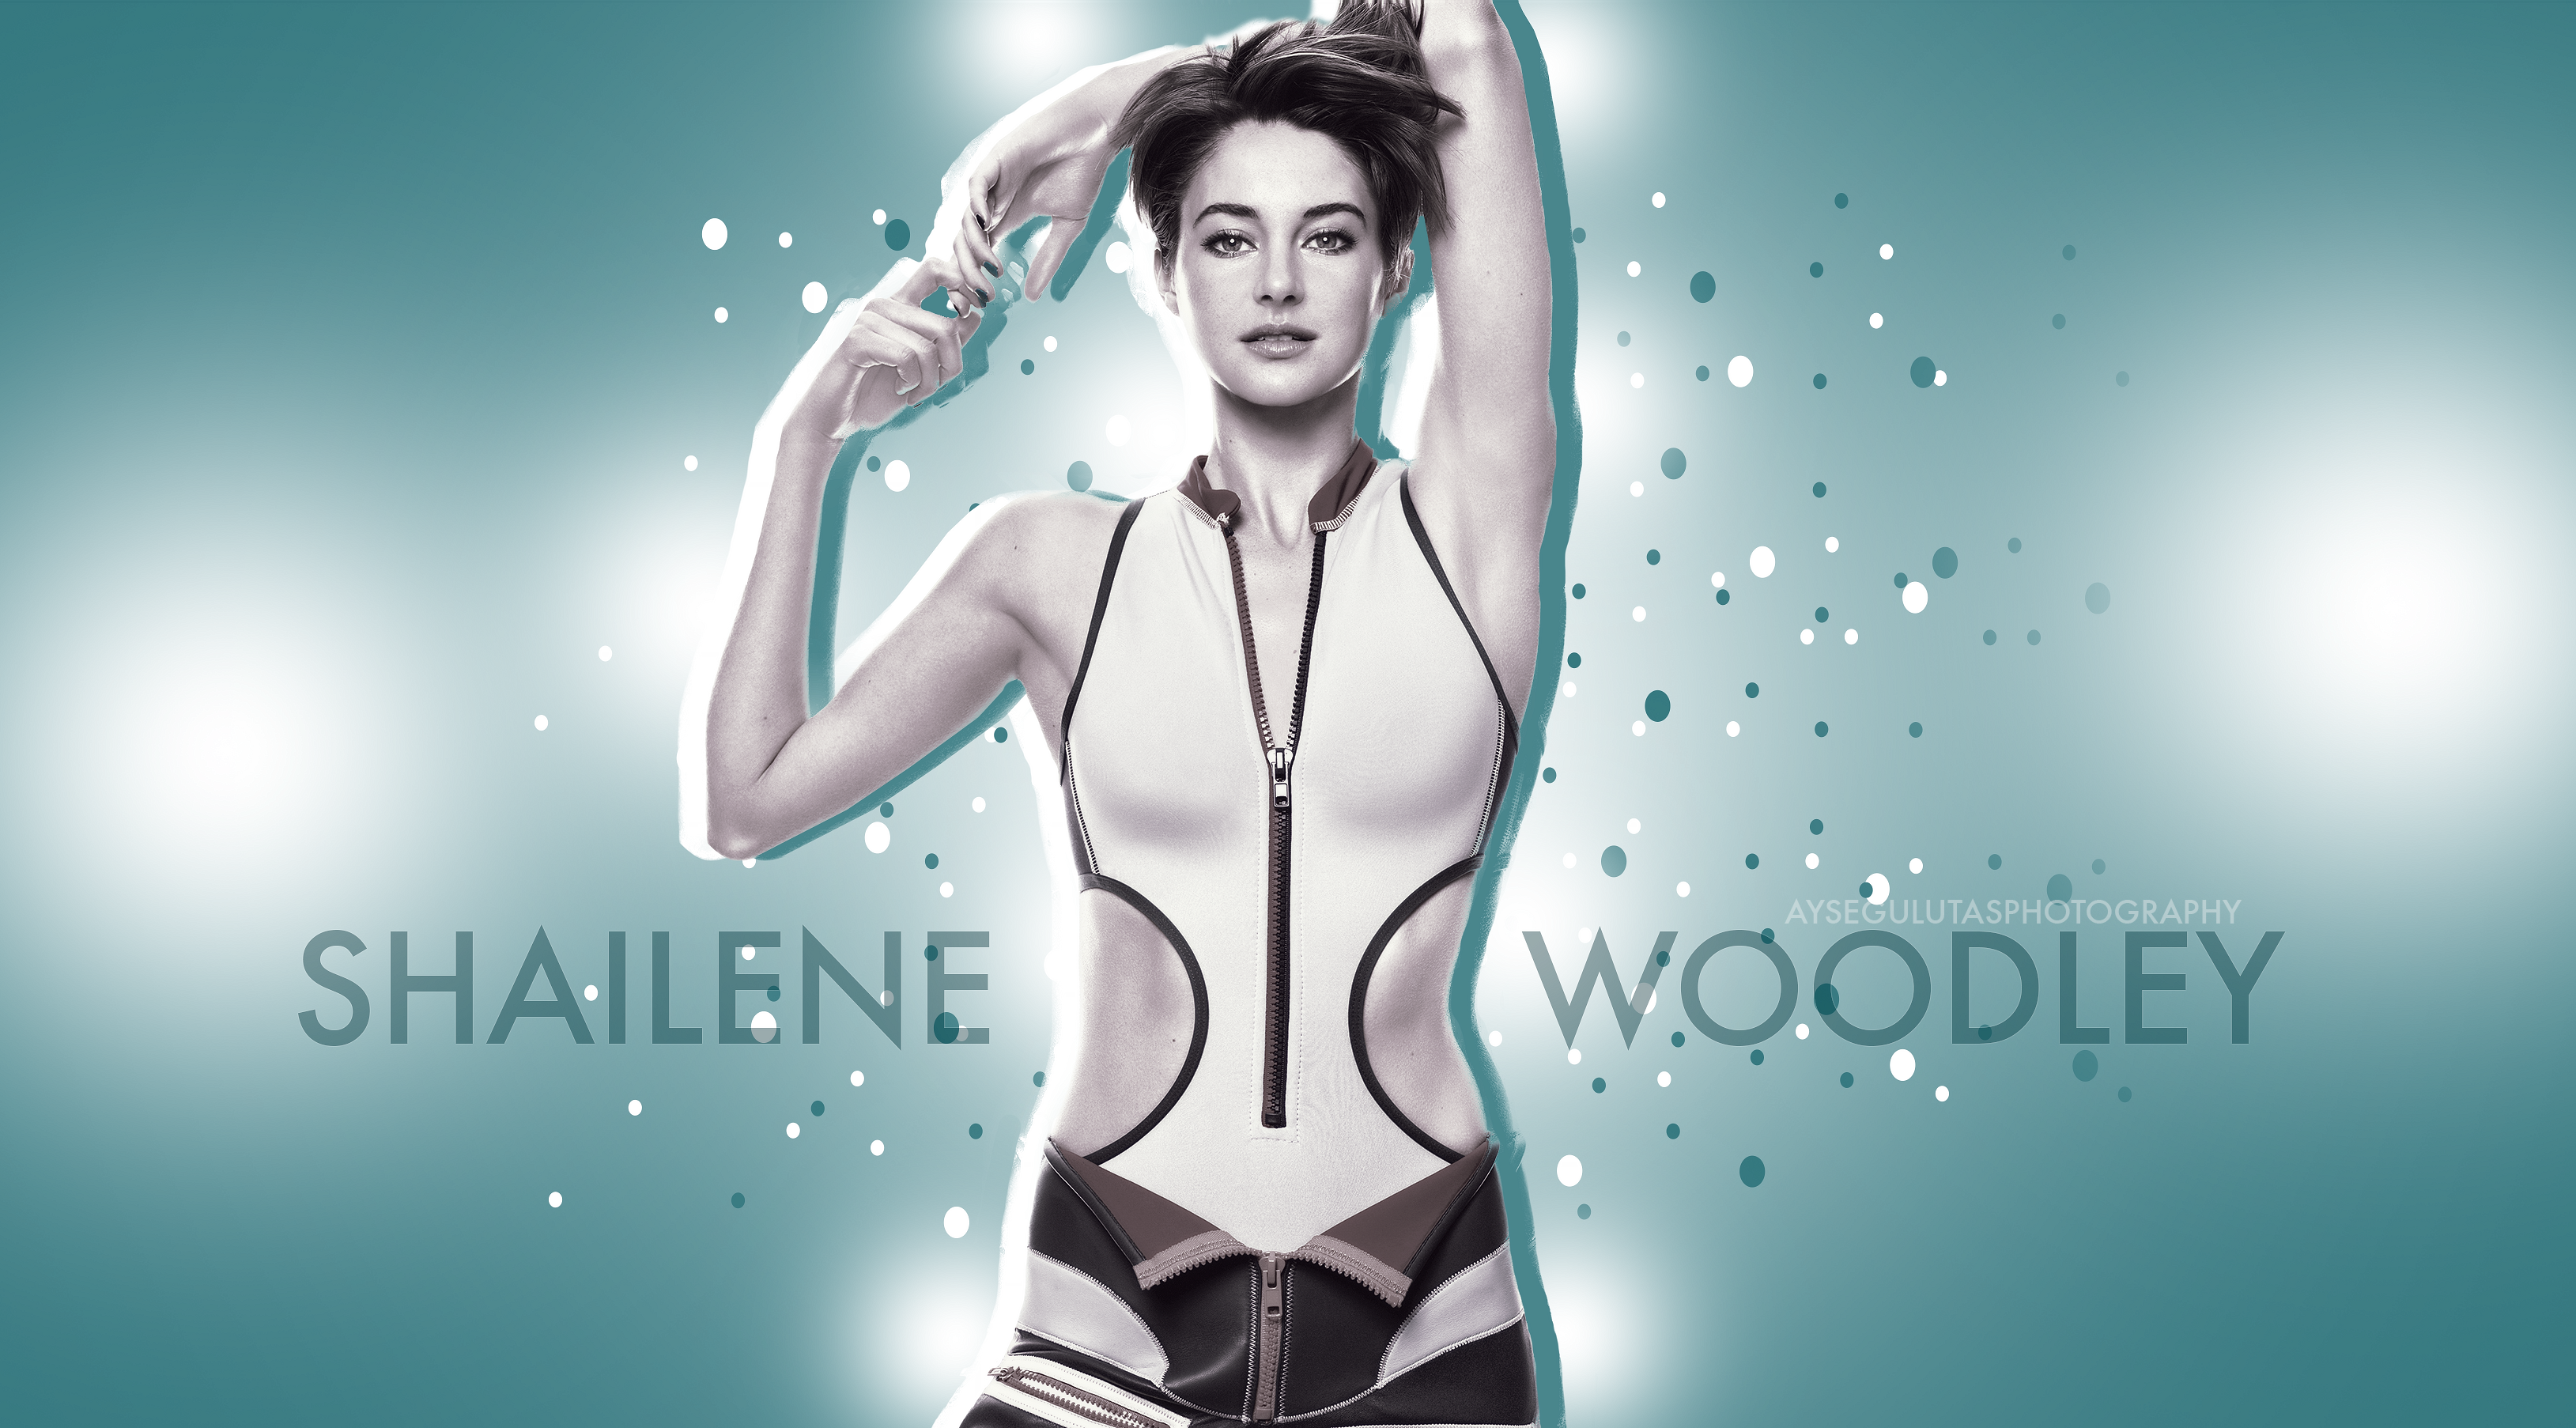 Shailene woodley wallpaper by aysegulutas on deviantart shailene woodley wallpaper by aysegulutas shailene woodley wallpaper by aysegulutas altavistaventures Images